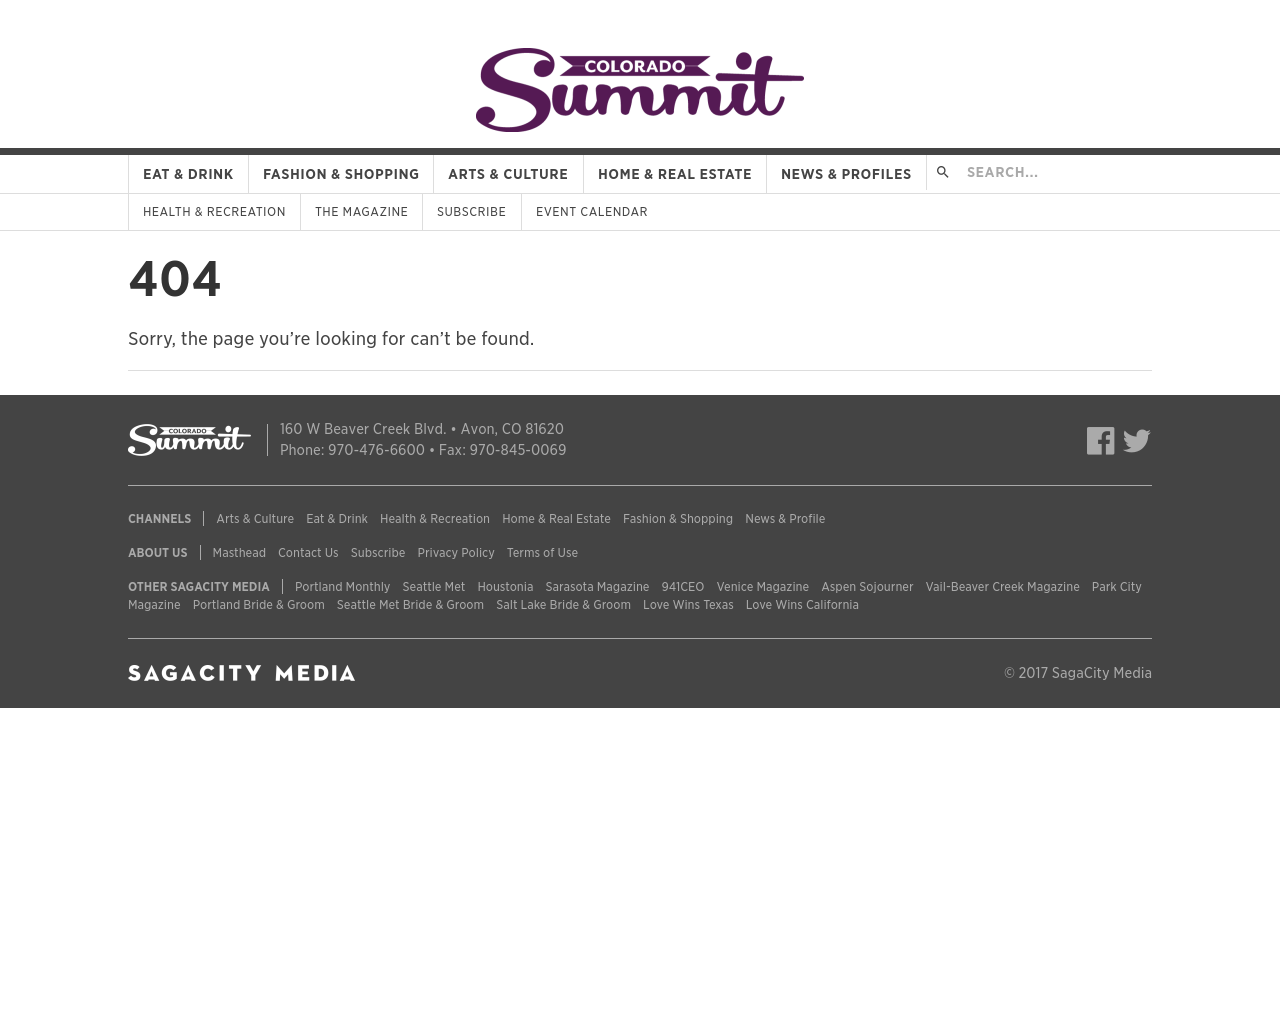 Colorado-Summit-Advertising-Reviews-Pricing